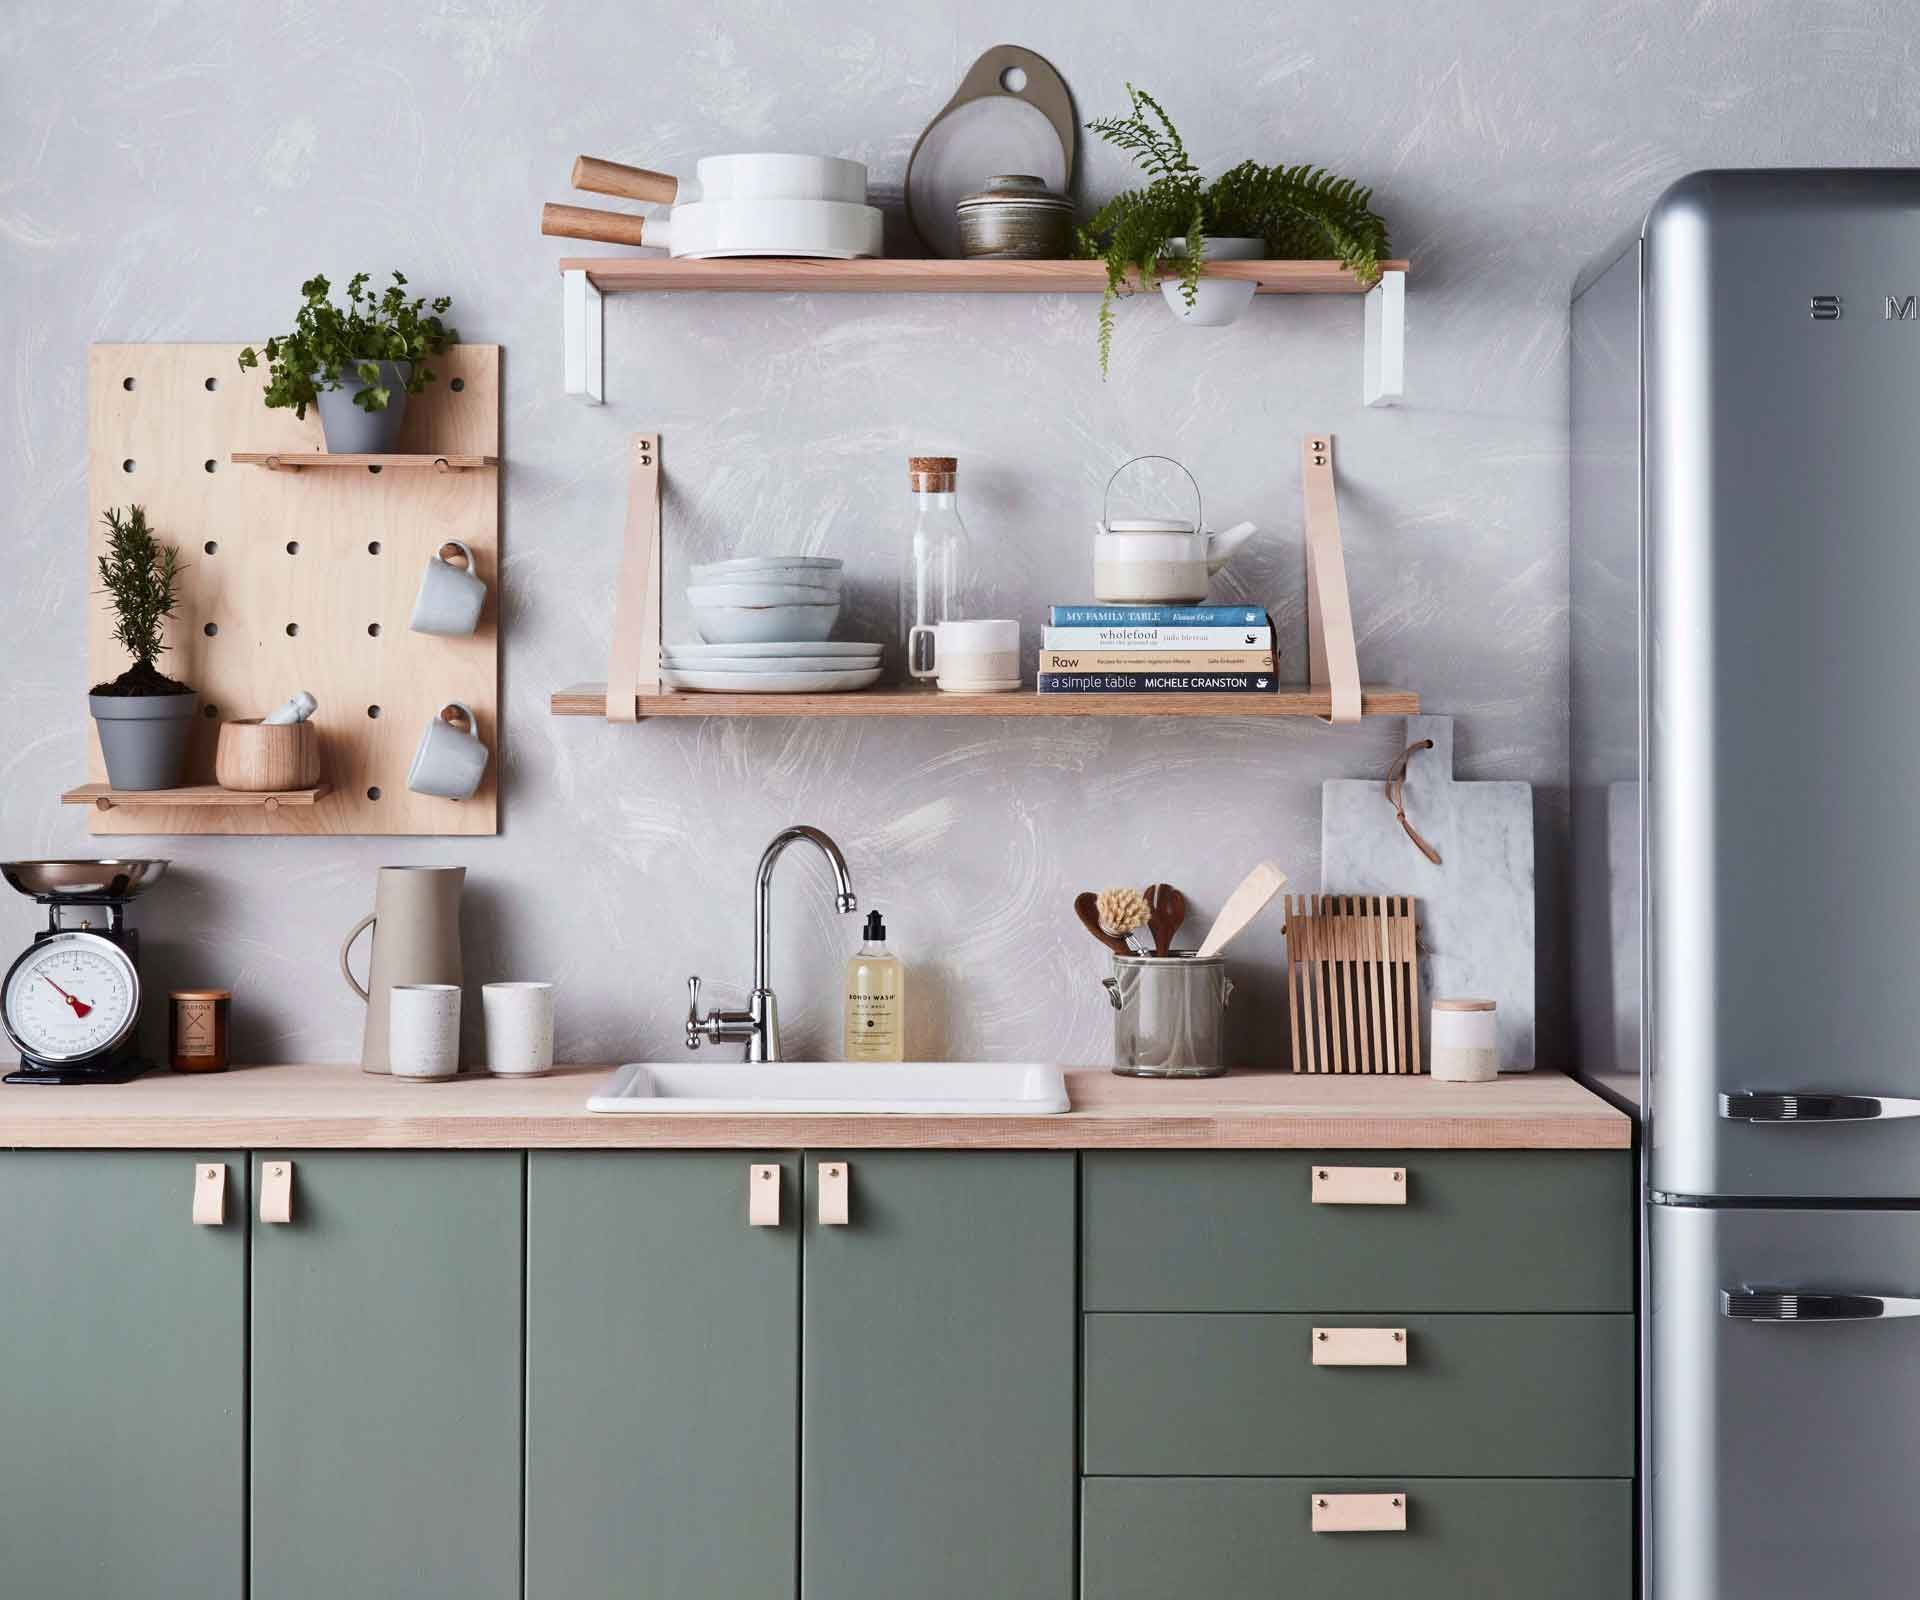 5 Easy And Cheap Unique Ideas Floating Shelves Kitchen Farmhouse Floating Shelve Kitchen Cabinet Remodel Modern Kitchen Cabinet Design Modern Kitchen Cabinets